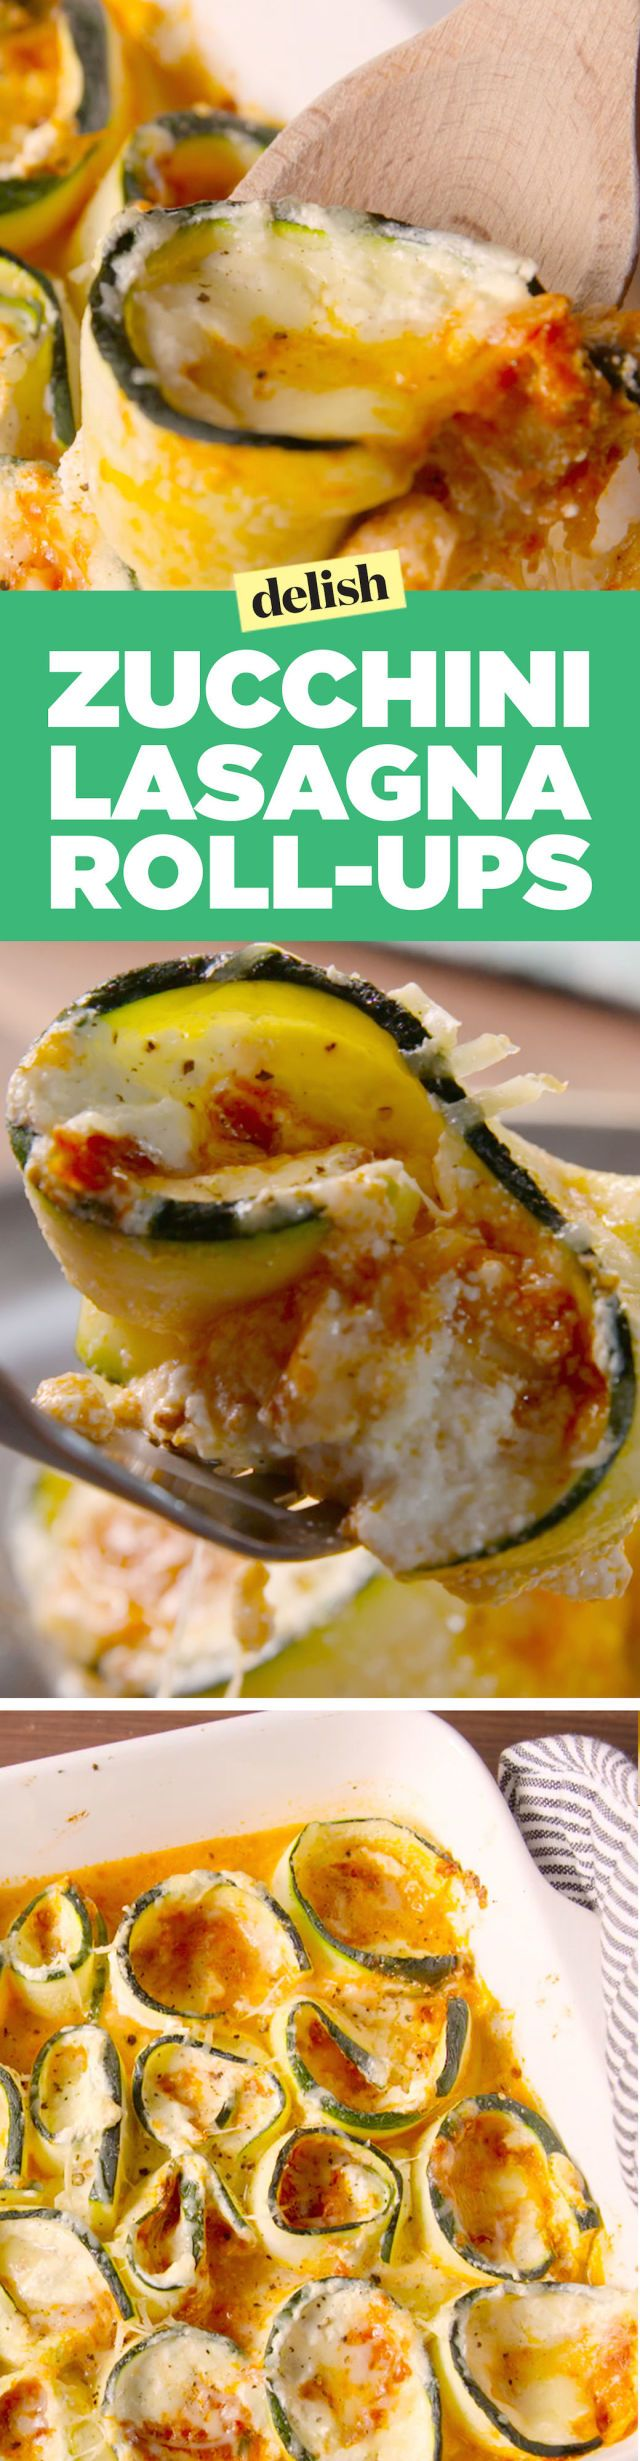 Zucchini Lasagna Roll-Ups Are Low-Carb #SummerPastaGoals